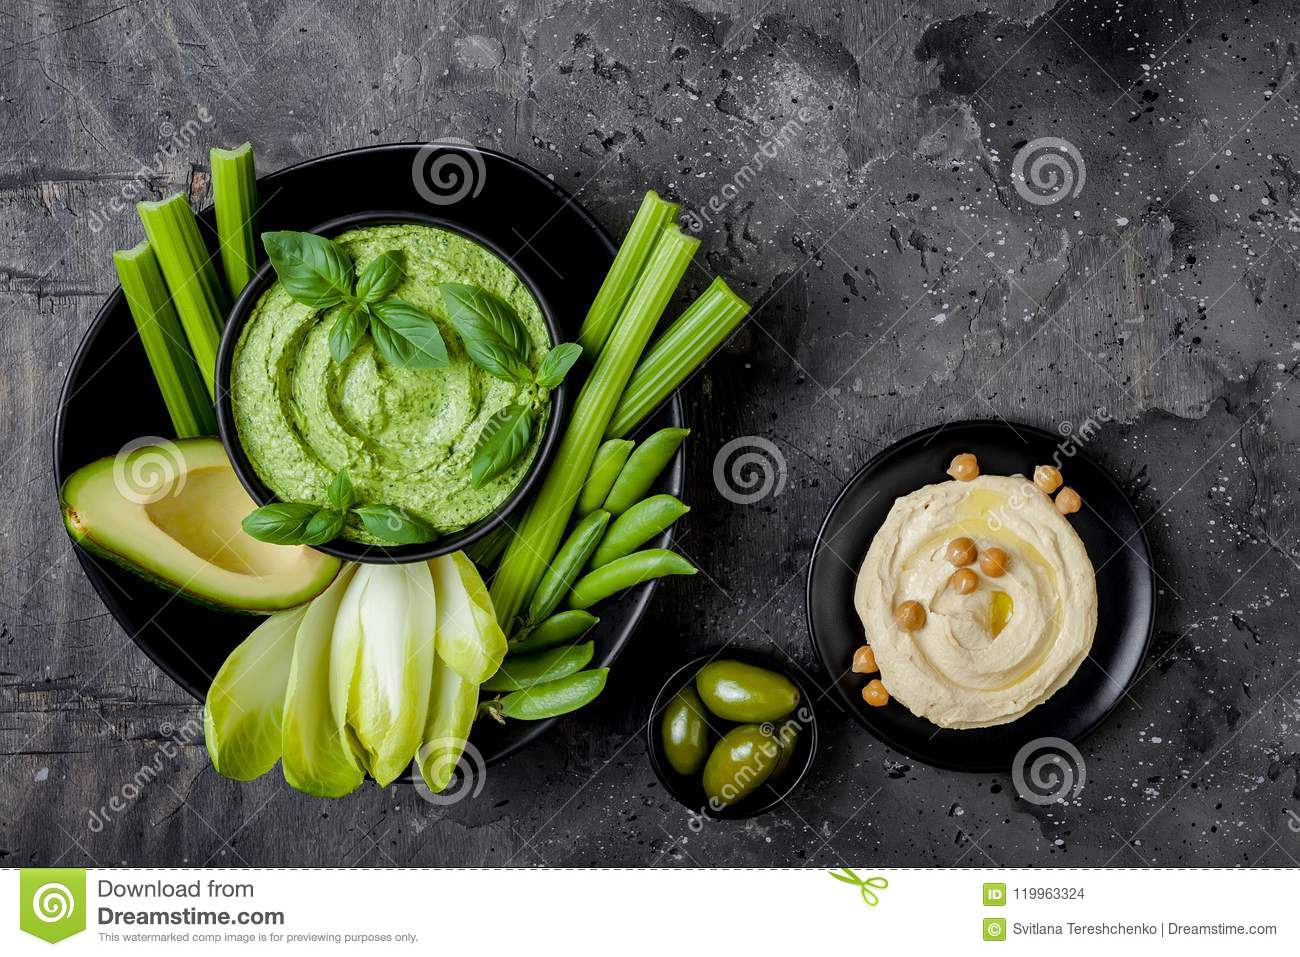 Green vegetables snack board with herb hummus or pesto dip. Healthy raw summer appetizer platter.